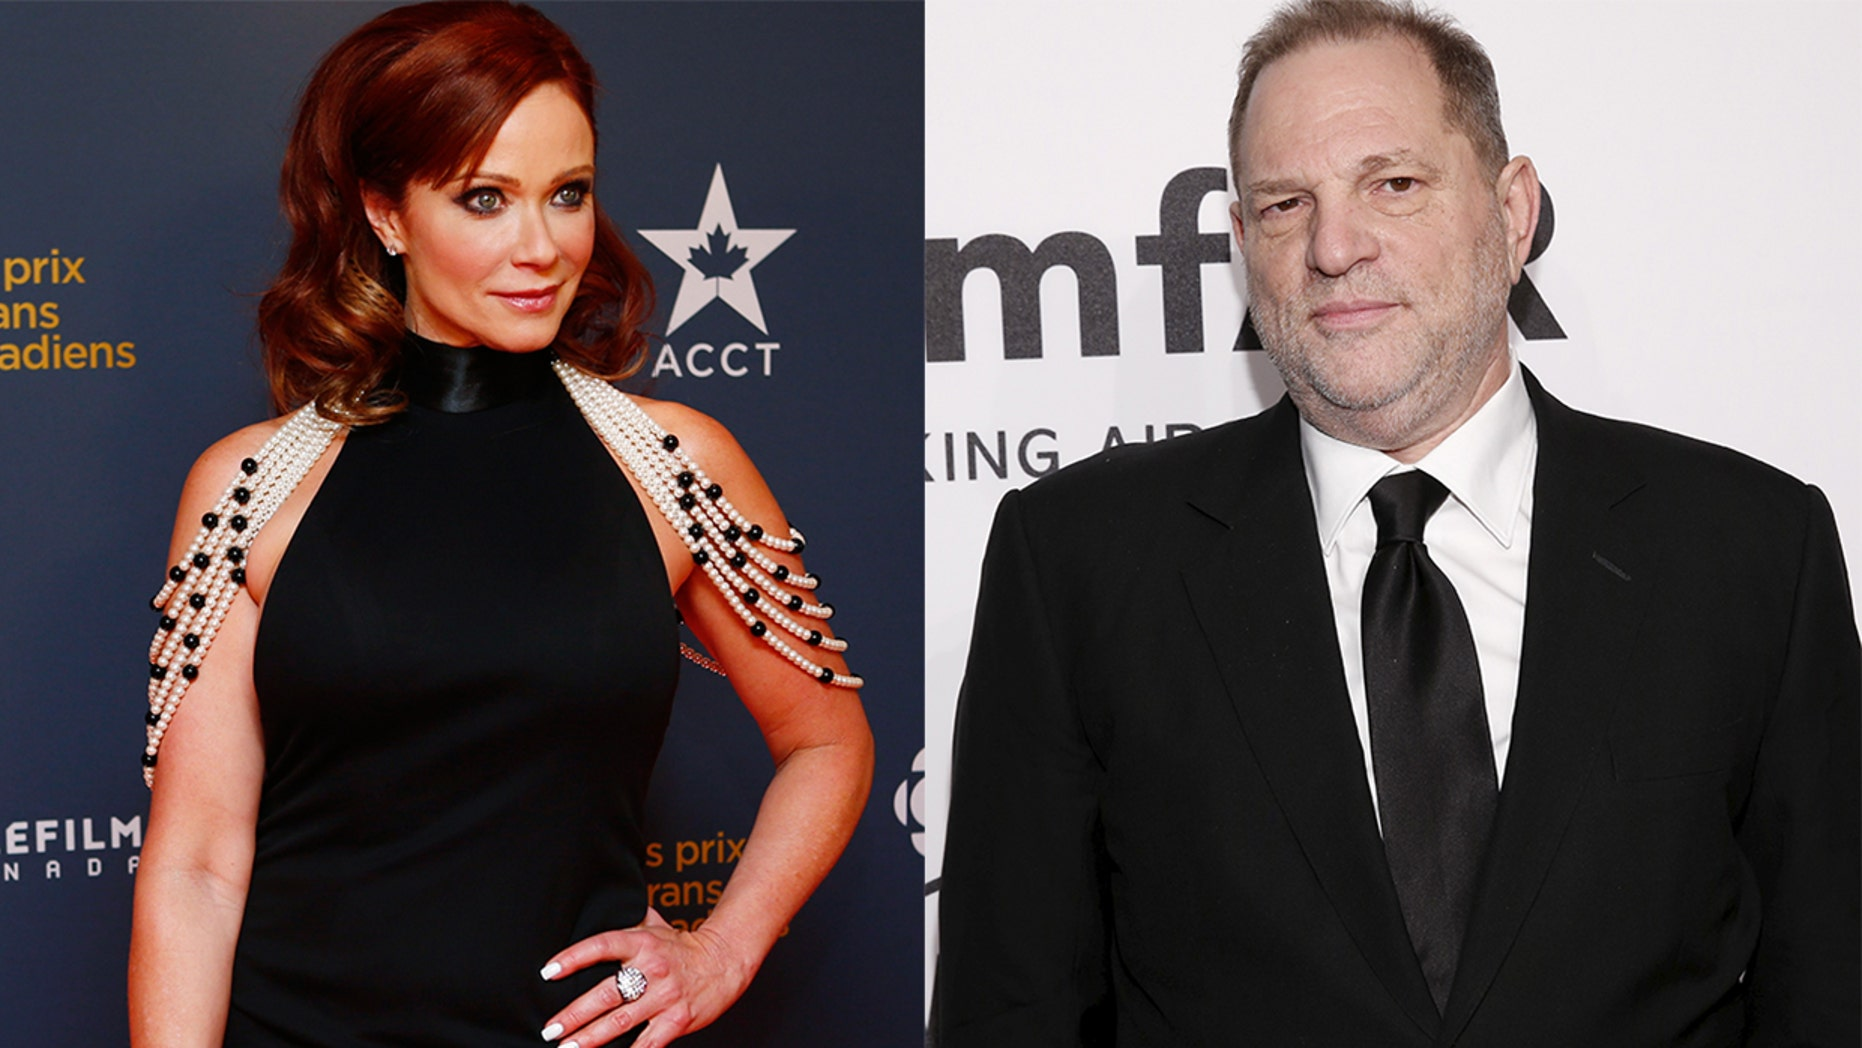 Lauren Holly, left, has accused Harvey Weinstein of stripping naked in front of her in a hotel room.